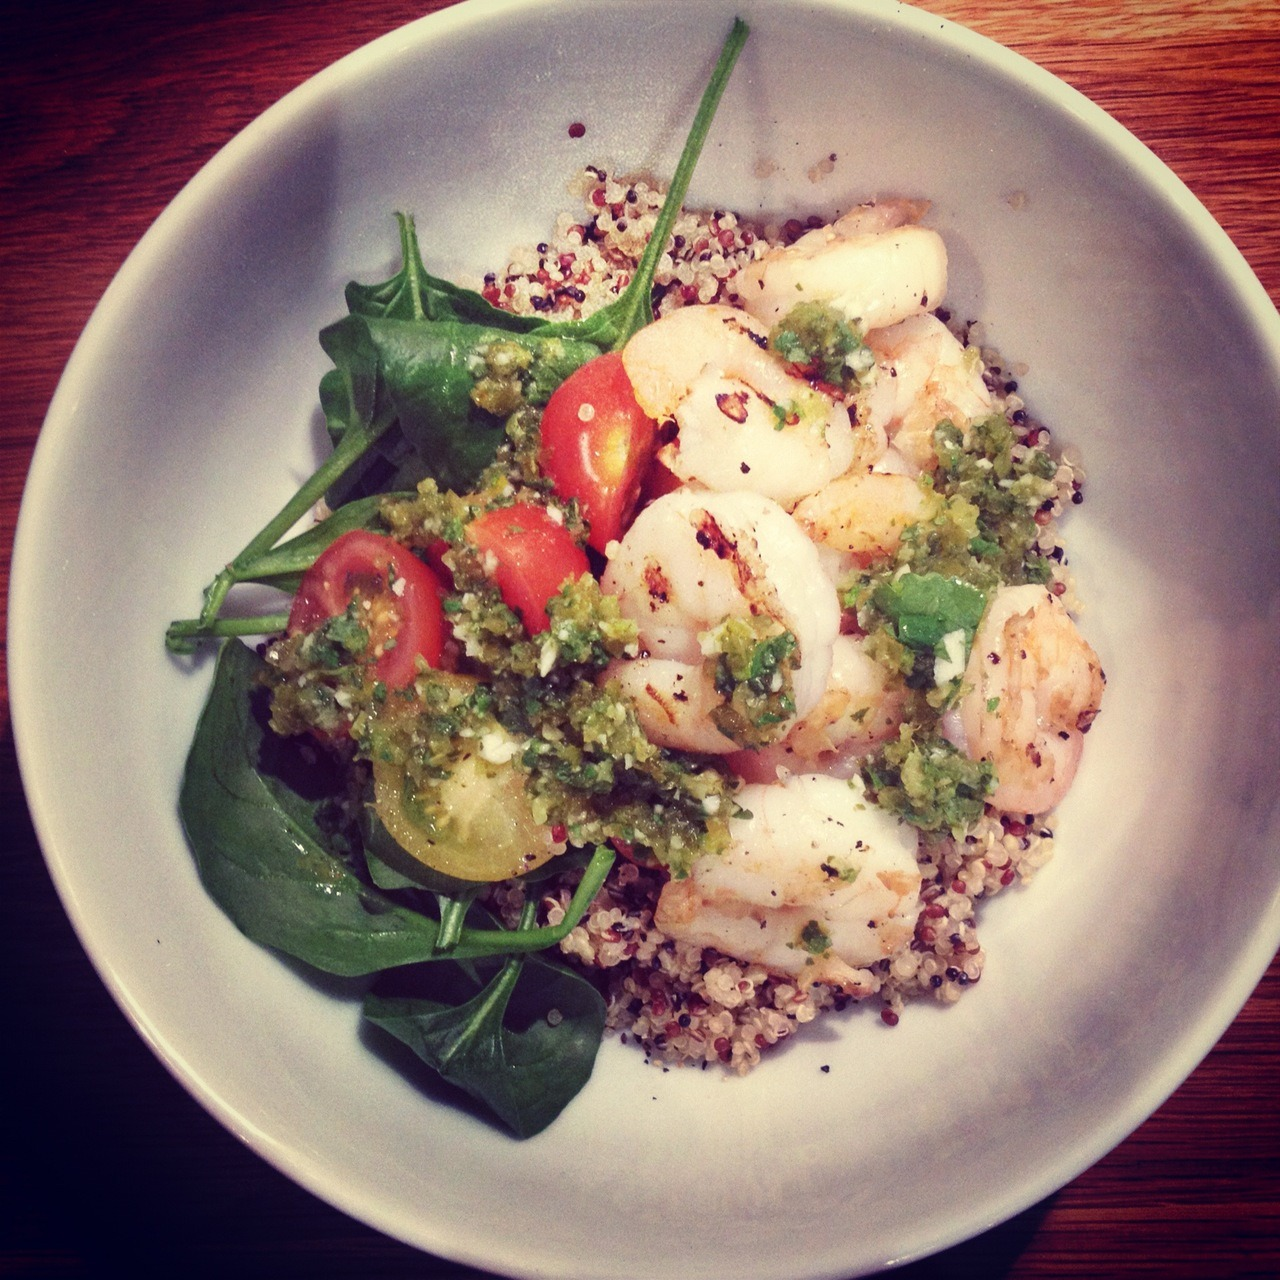 Grilled prawn quinoa salad with jalapeno dressing two cups cooked quinoa (follow instructions or read our quinoa section on the blog) five hundred grams green raw prawns/shrimps, peeled with tail intact olive oil, for brushing sea salt and cracked black pepper  two hundred grams mixed cherry tomatoes, halved hundred grams spinach or rocket leaves jalapeno dressingone tablespoon lime juice two teaspoons finely grated lemon rind one cup chopped coriander leaves two cloves of garlic, crushed one quarter cup chopped store-bought pickled jalapenos two tablespoons jalapeno brine (that is the `juice` they were pickled in) one// To make the jalapeno dressing, place the lime juice, lime rind, coriander, garlic, chopped jalapeno and jalapeno brine in a processor and process until roughly chopped. Set aside. two// Preheat a char-grill pan or bbq over high heat. Brush the prawns with oil and sprinkle with salt and pepper. Cook the prawns for two minutes each side or until cooked through. Place the quinoa in a bowl with the tomato, spinach and prawns and drizzle with the dressing. Serves four.